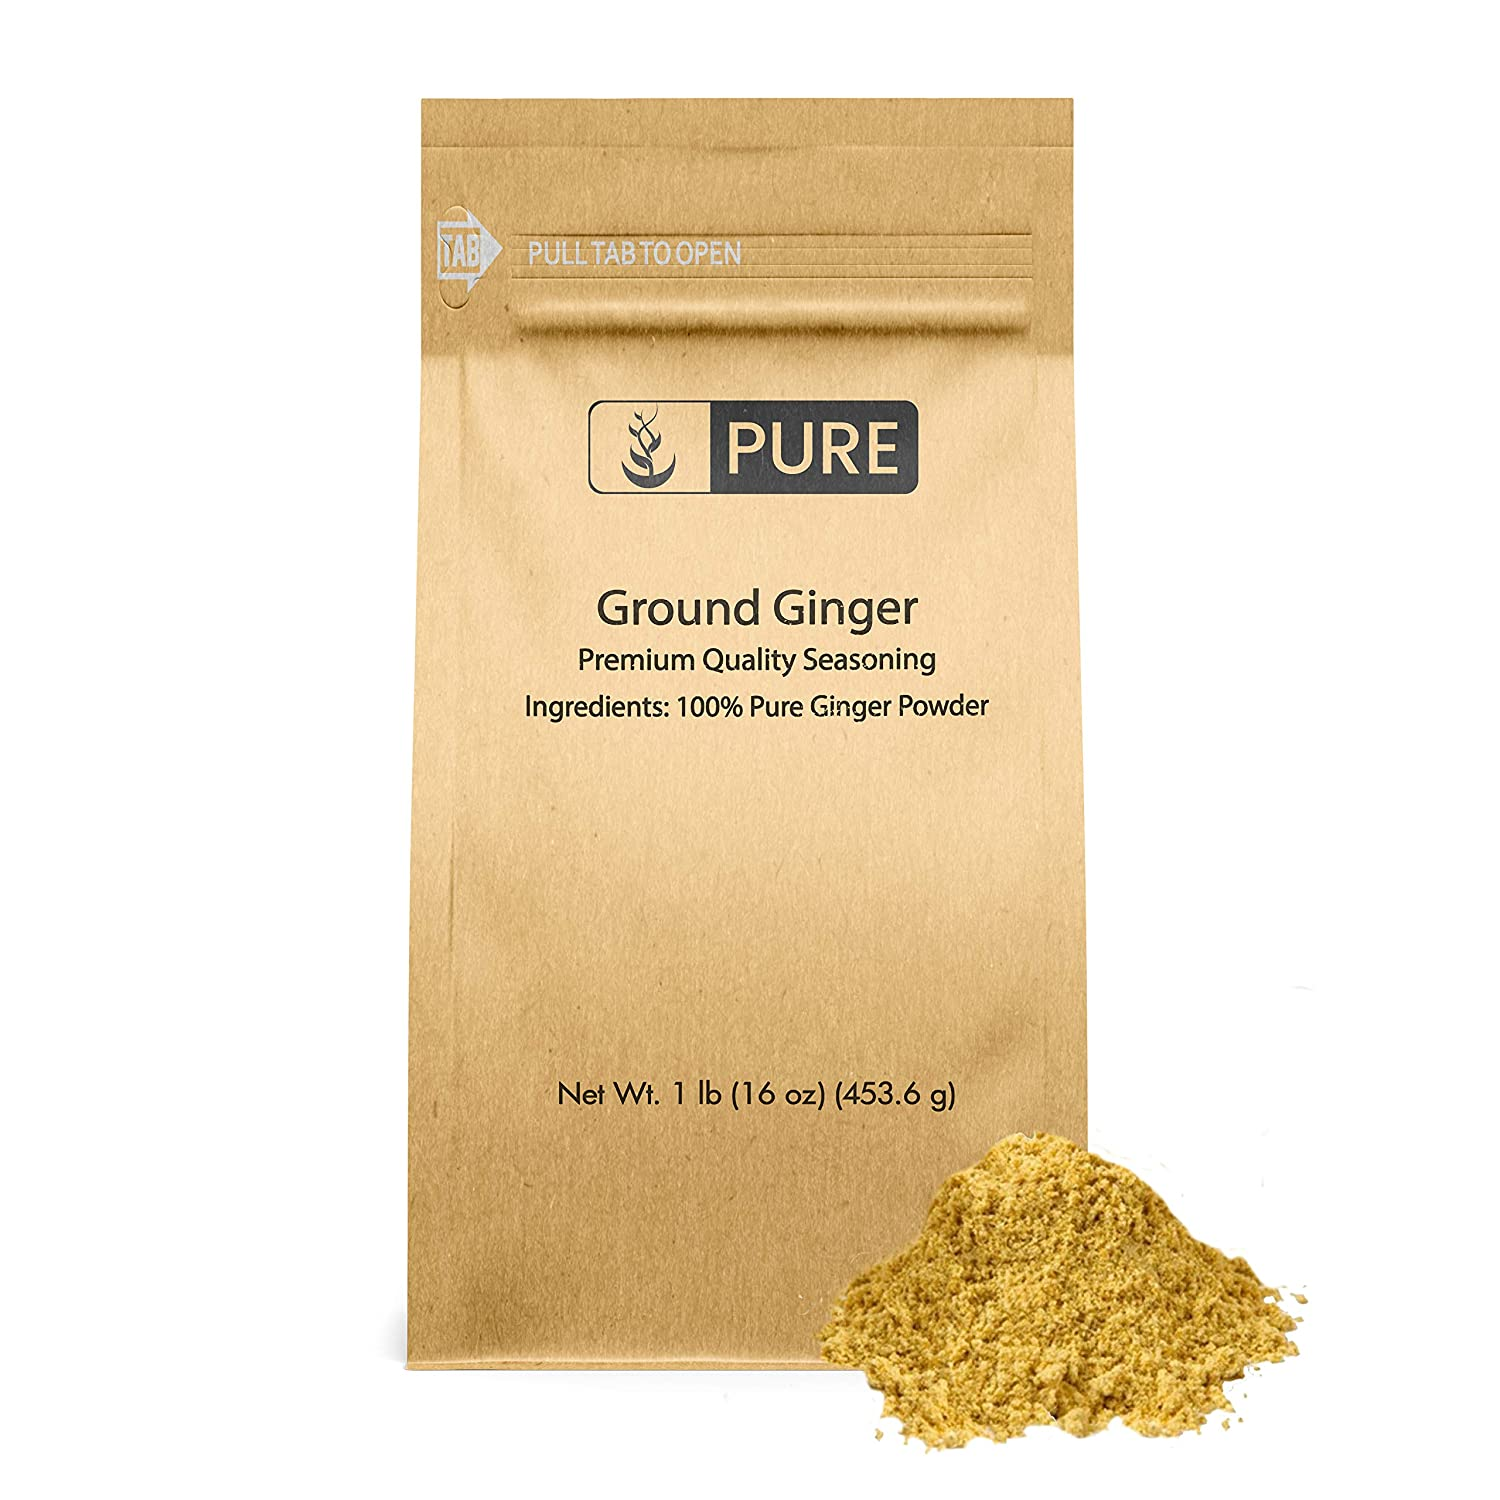 Ground Ginger, 1lb, Whole Herb, Pure & Natural with No Preservatives, Vegetarian, Gluten-Free, Allergen-Free, Keto Friendly, 1 Ingredient, Made in USA, Satisfaction Guaranteed